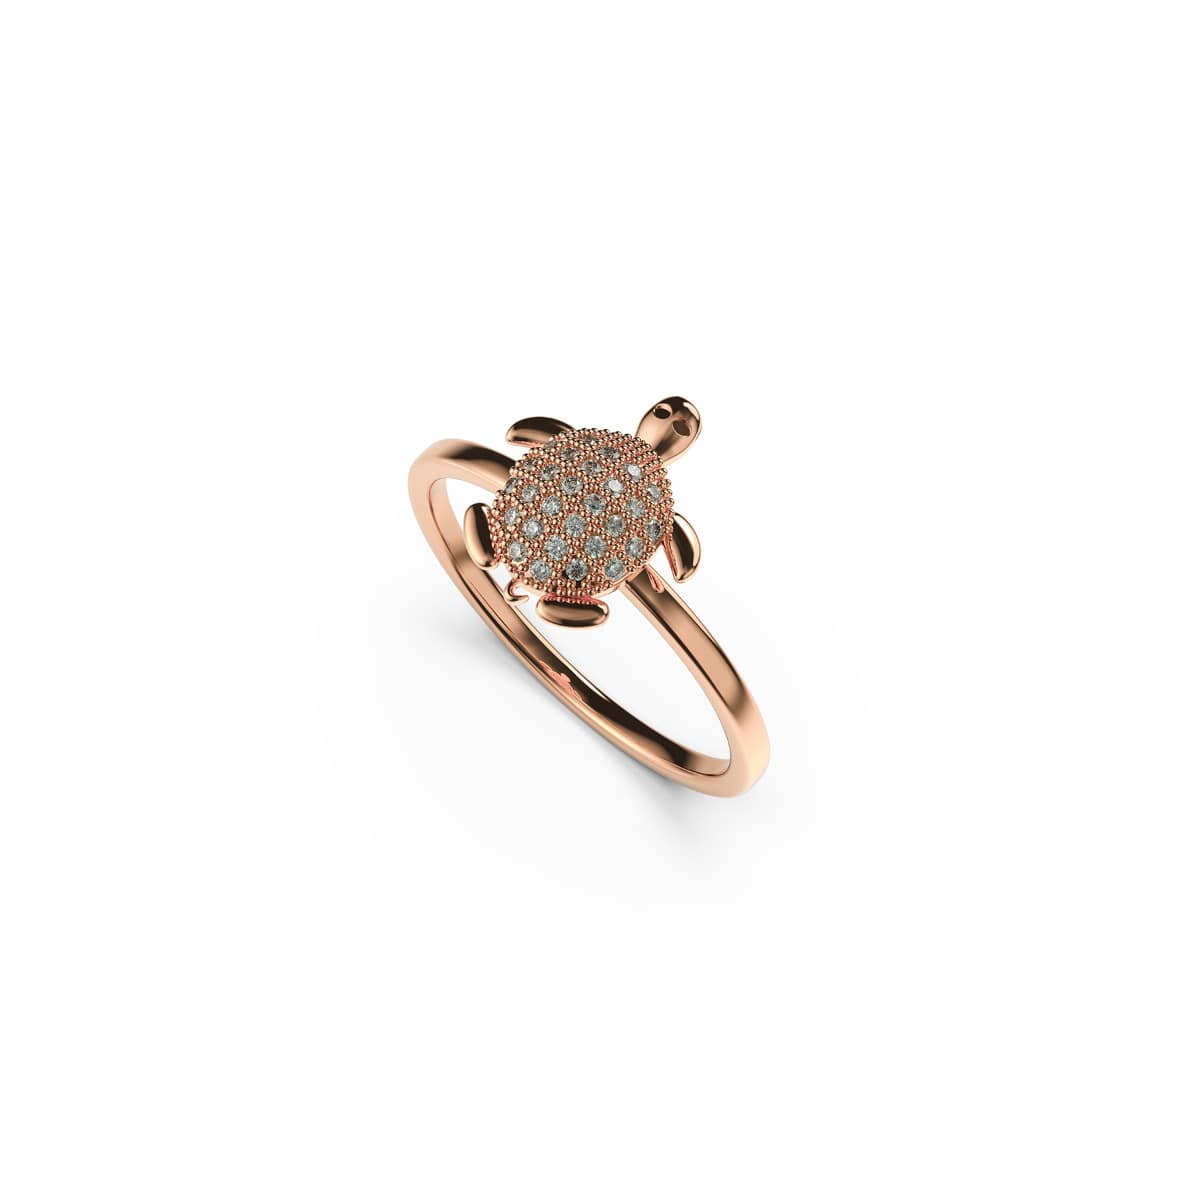 Tortuga | 18k Rose Gold Vermeil | .925 Sterling Silver | Cubic Zirconia Crystal Sea Turtle Ring